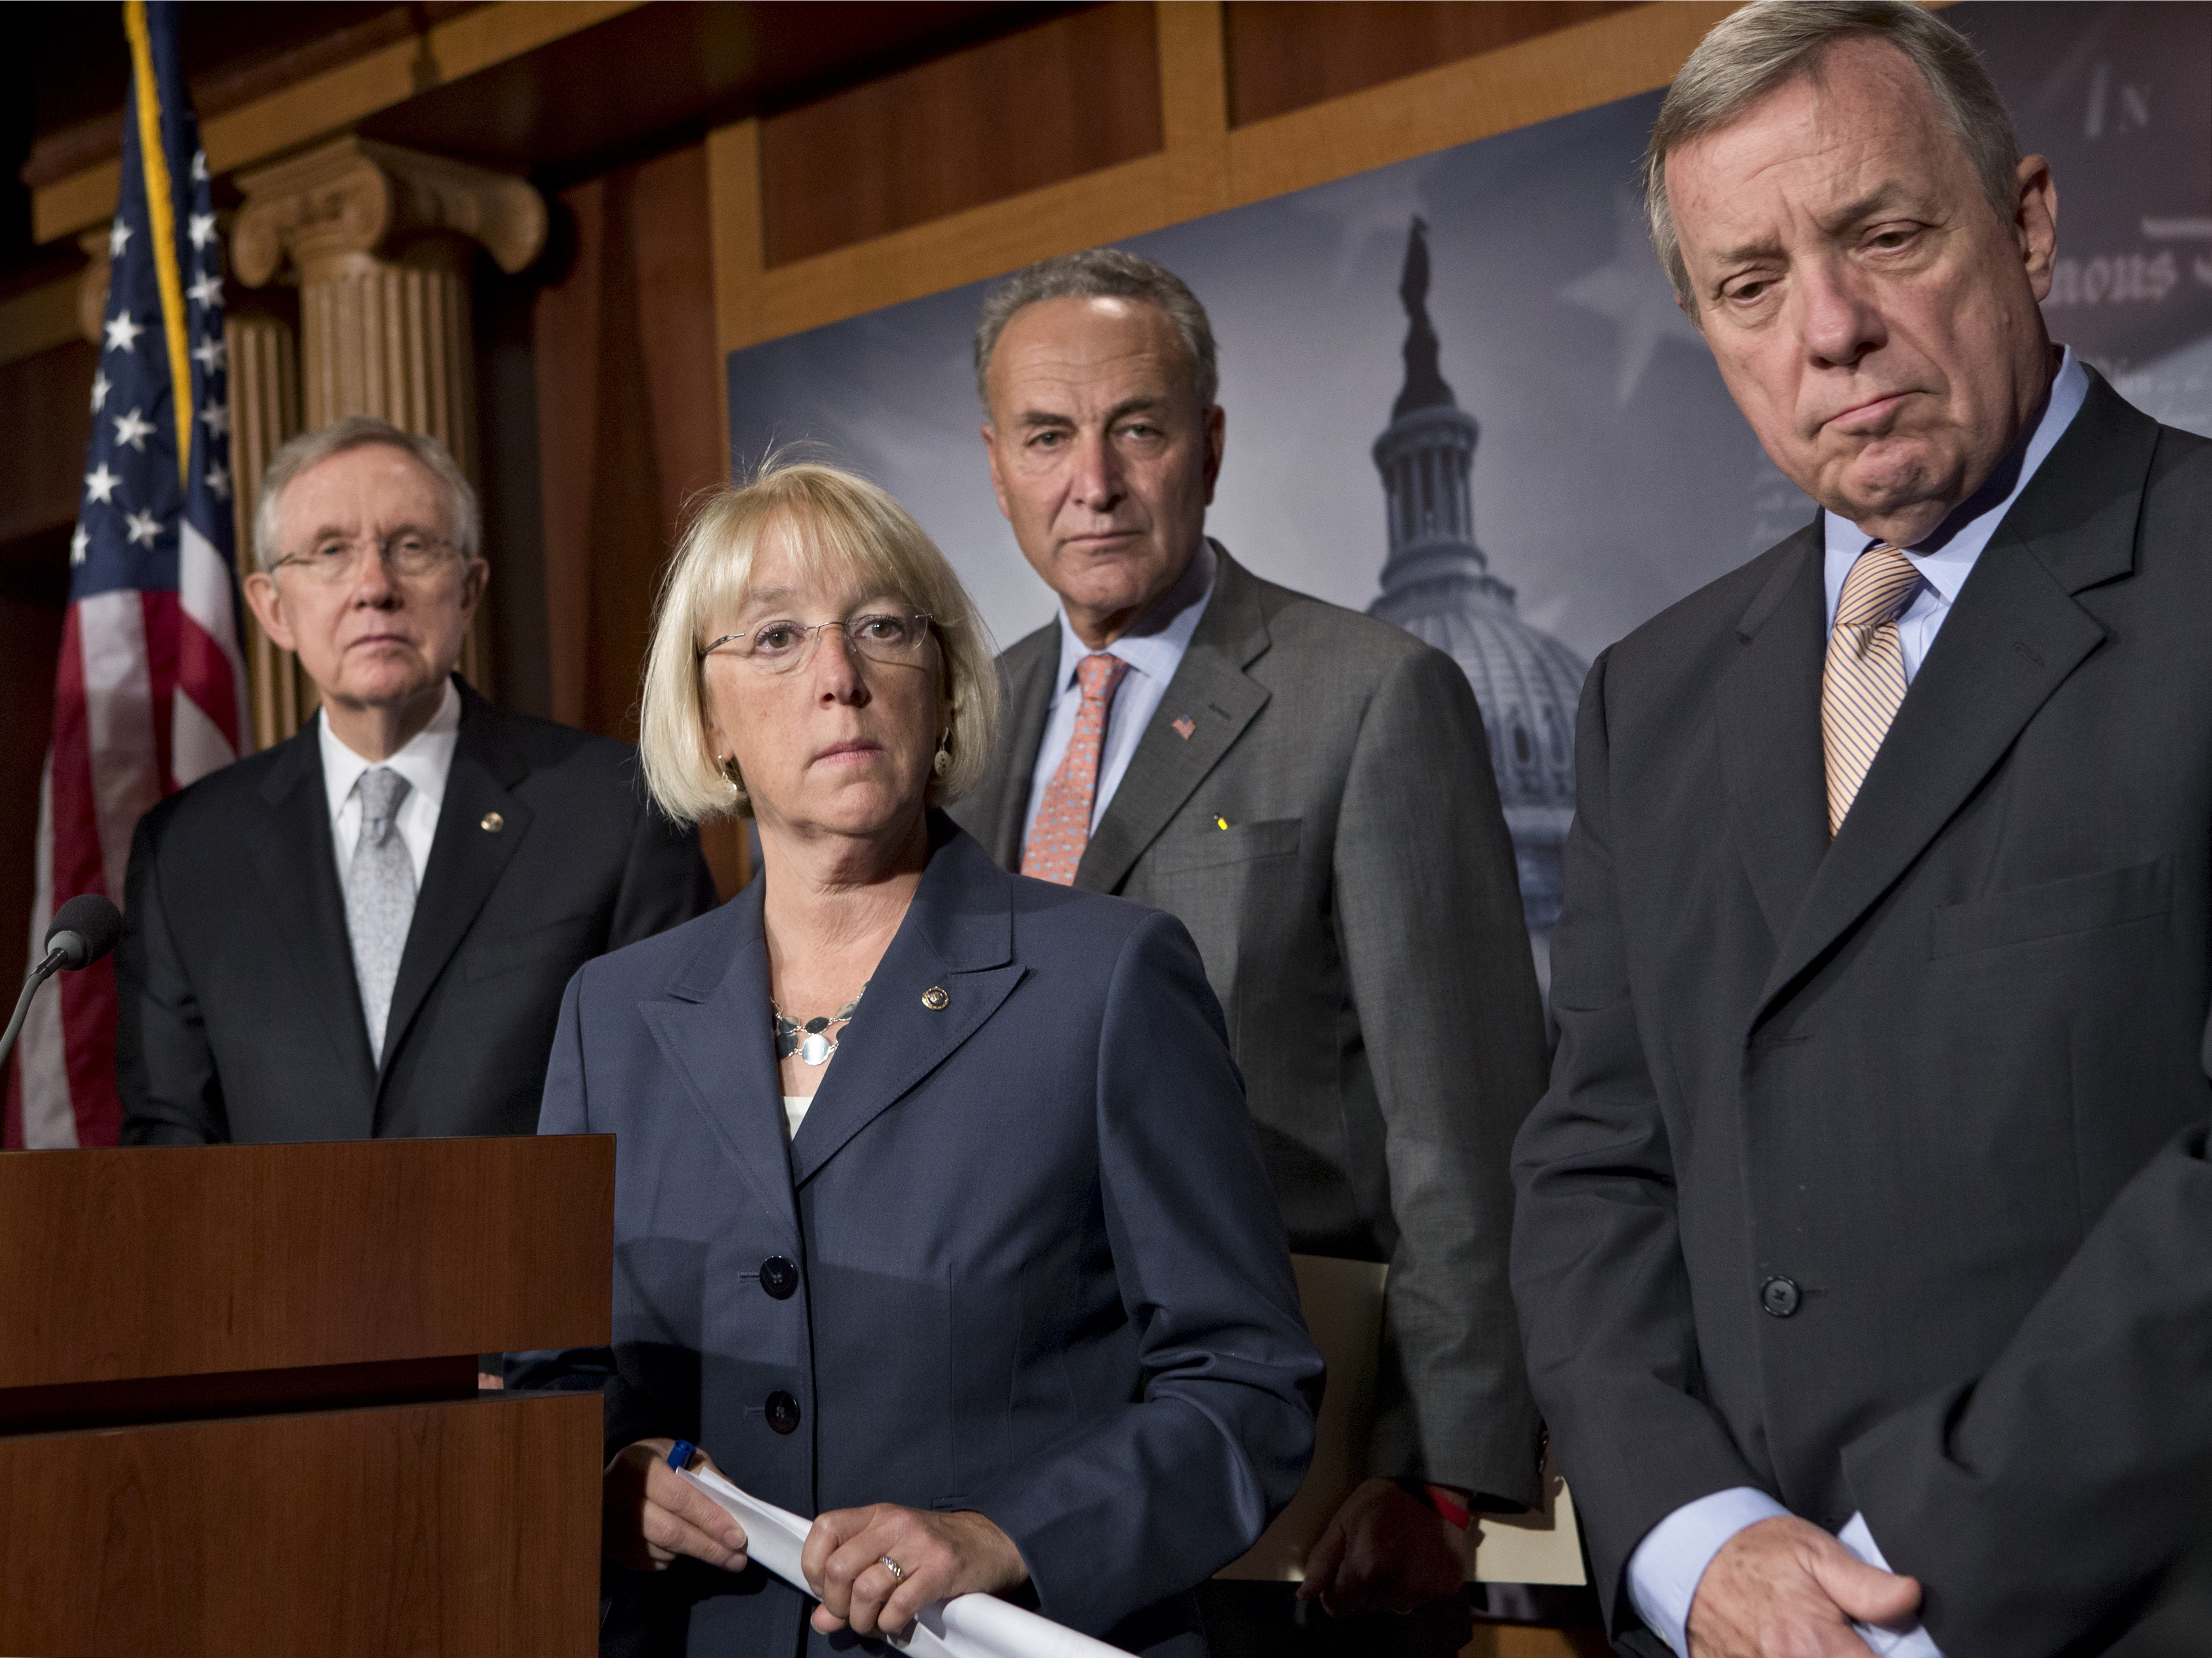 From left, Senate Majority Leader Harry Reid, D-Nev., Sen. Patty Murray, D-Wash., Sen. Charles Schumer, D-N.Y., and Sen. Dick Durbin, D-Ill., take questions at a news conference. (AP/J. Scott Applewhite)